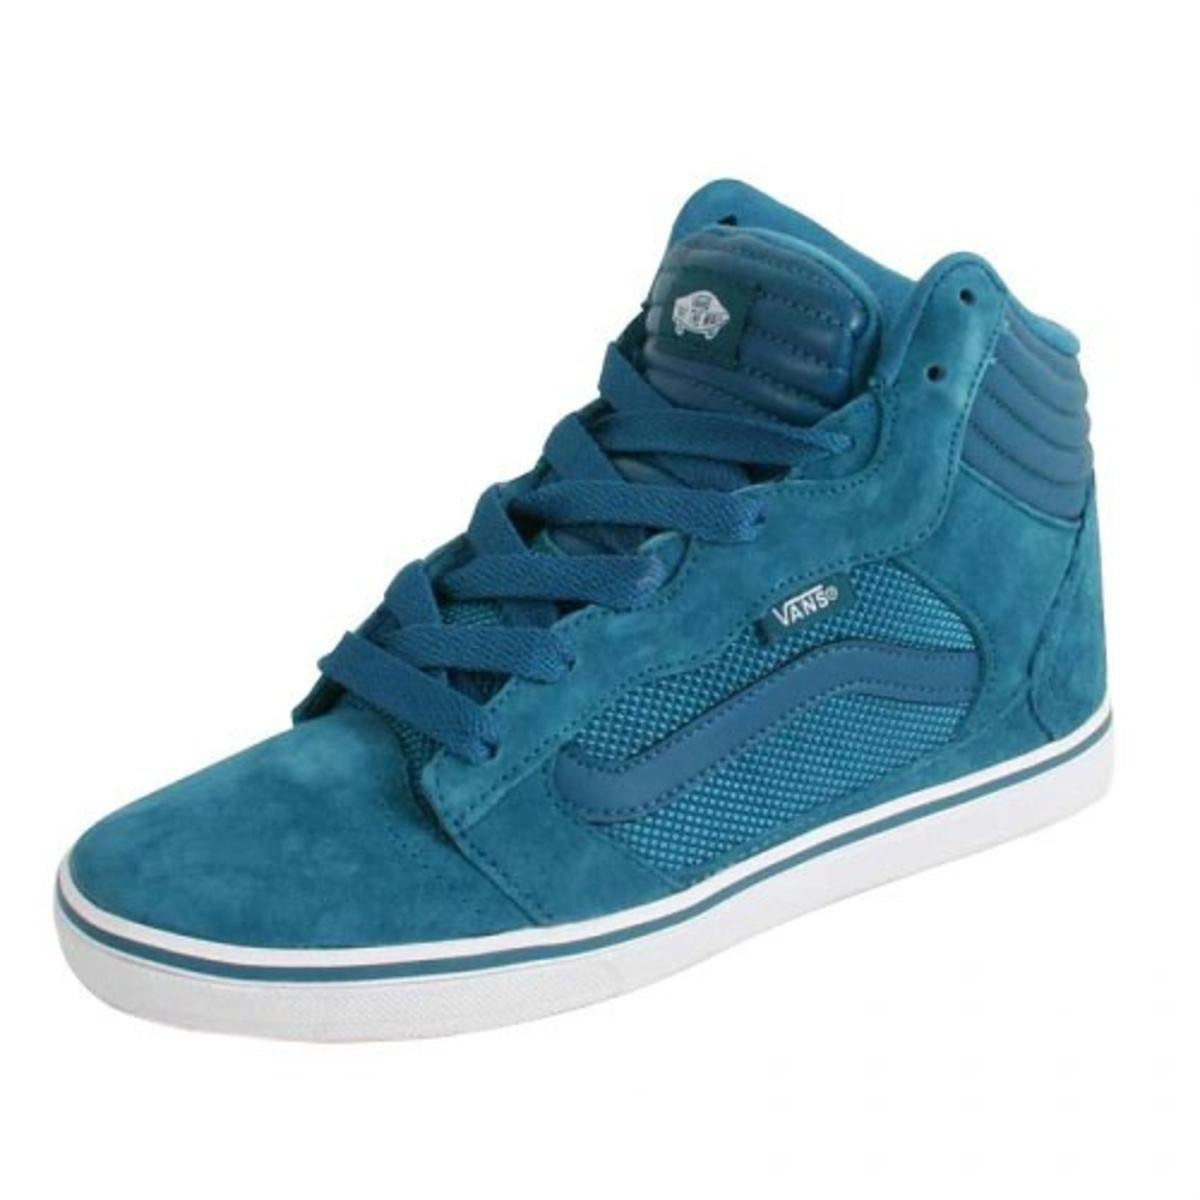 save off 7f27b a35ab Vans Skateboard Schuhe Amberton Hi Blue - Sneaker Skate Shoes